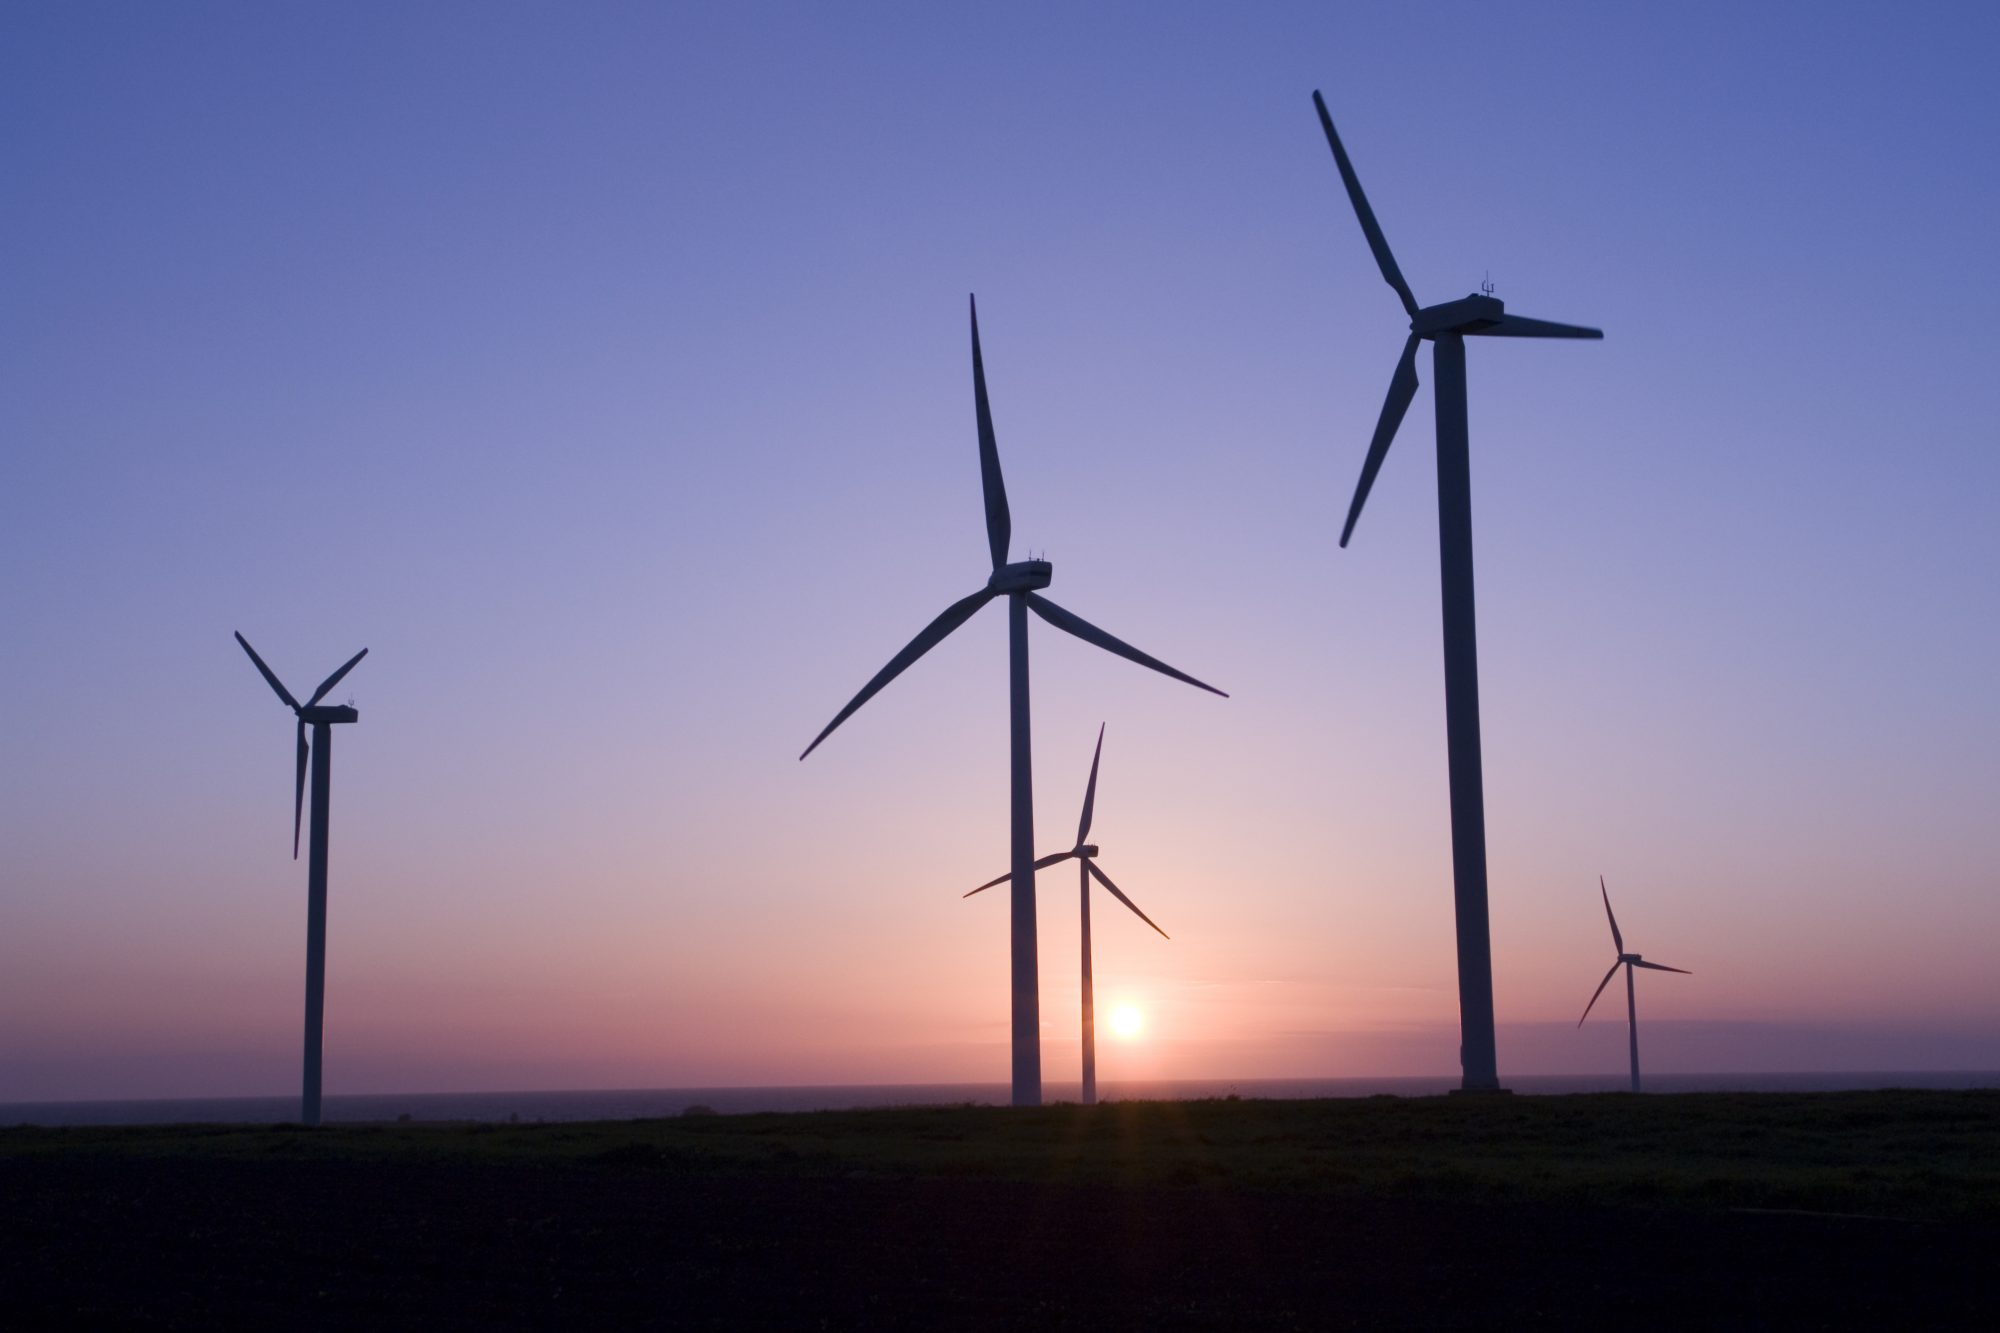 Construction begins on new wind farm in North Lanarkshire